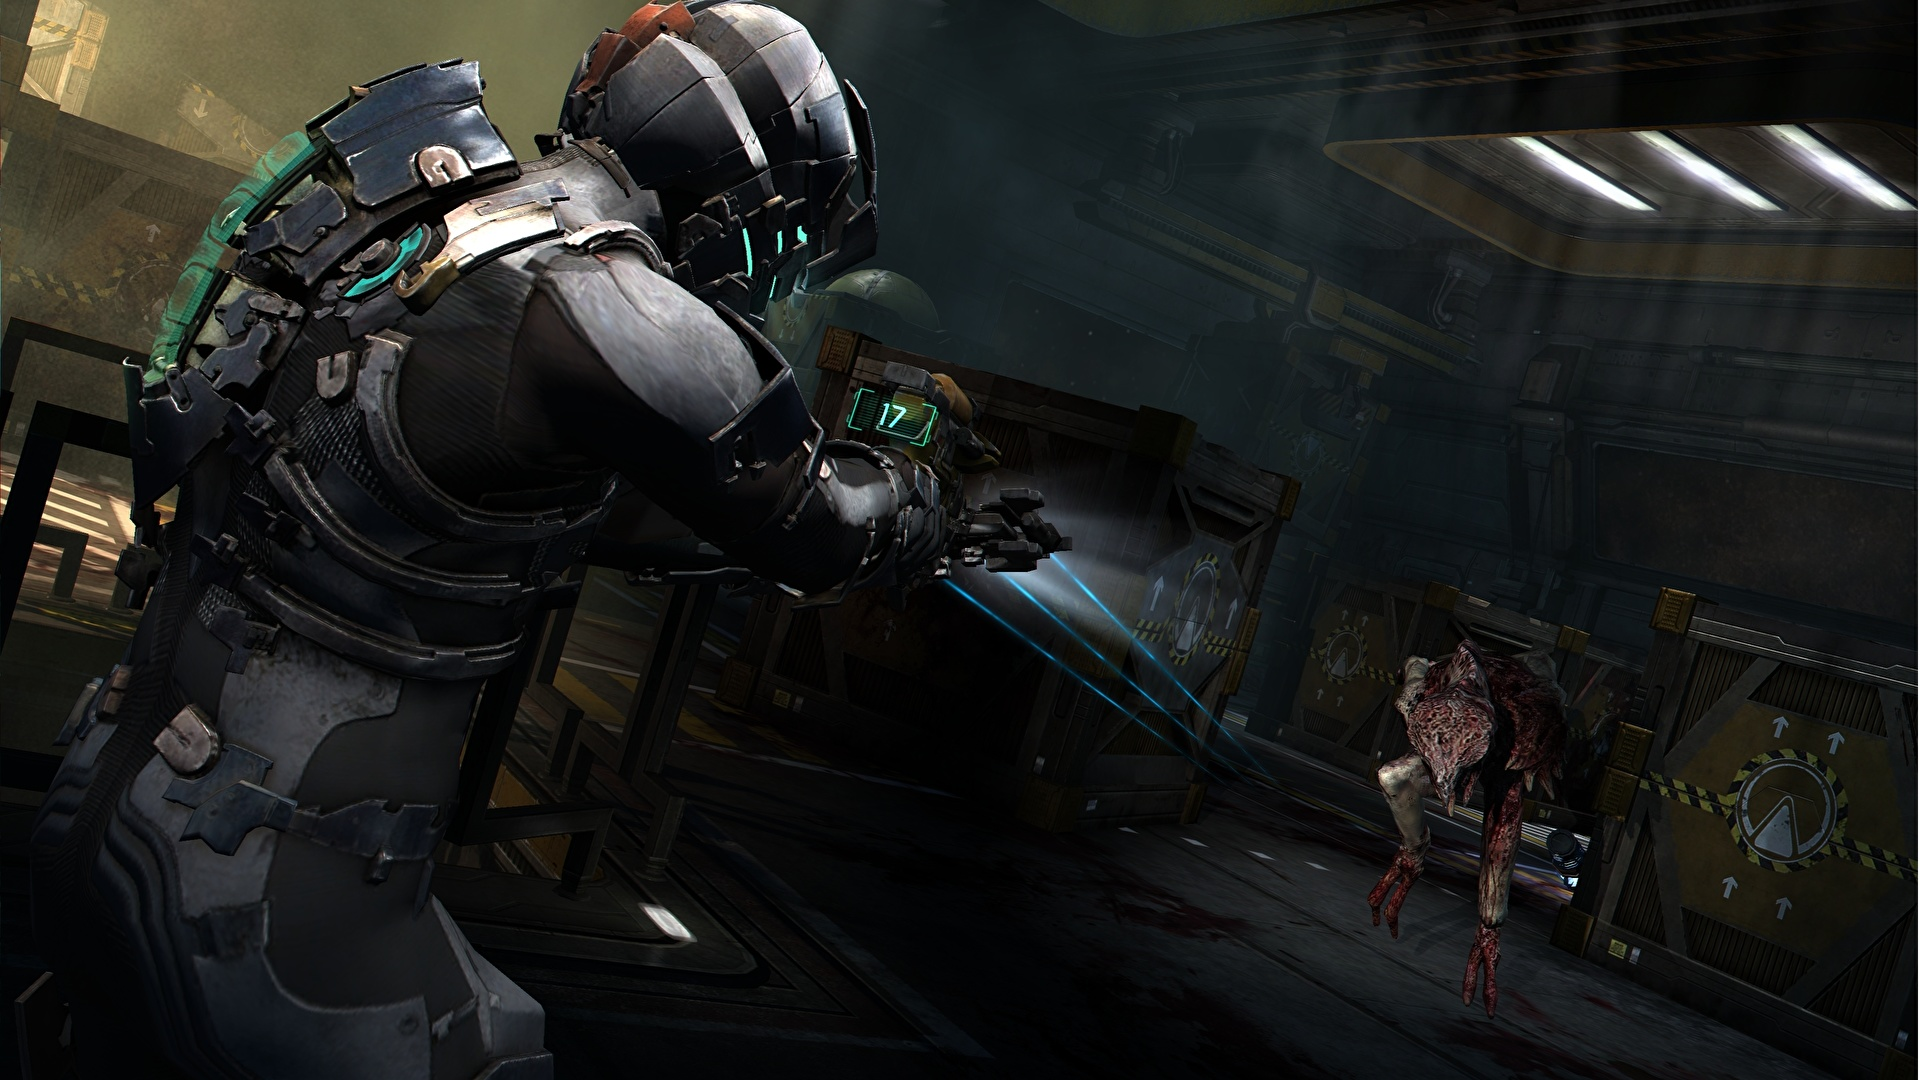 Pictures Dead Space Dead Space 2 Vdeo Game 1920x1080